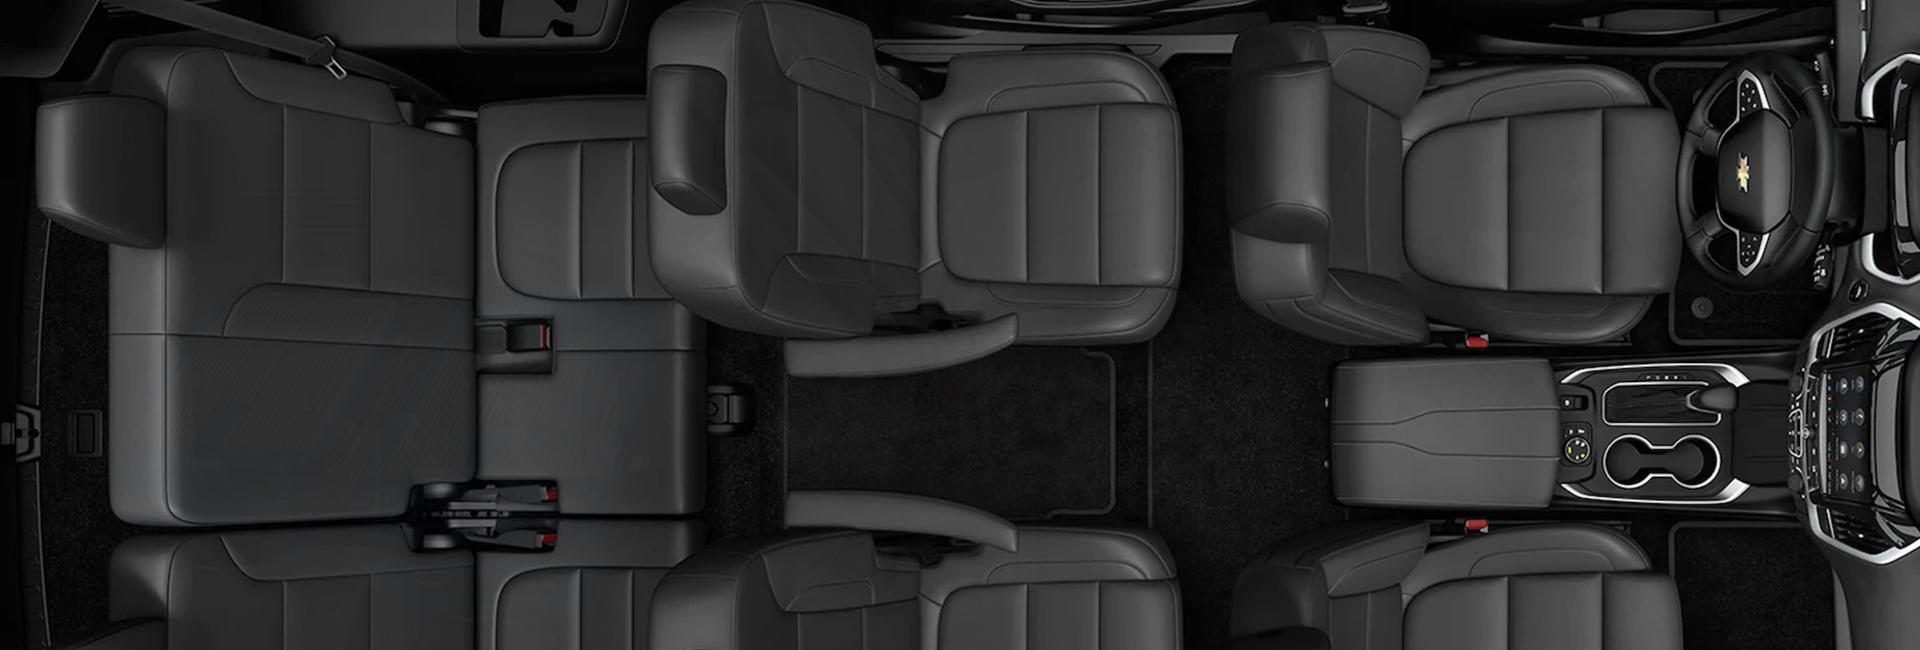 Overhead view of the seating in a Chevrolet Traverse